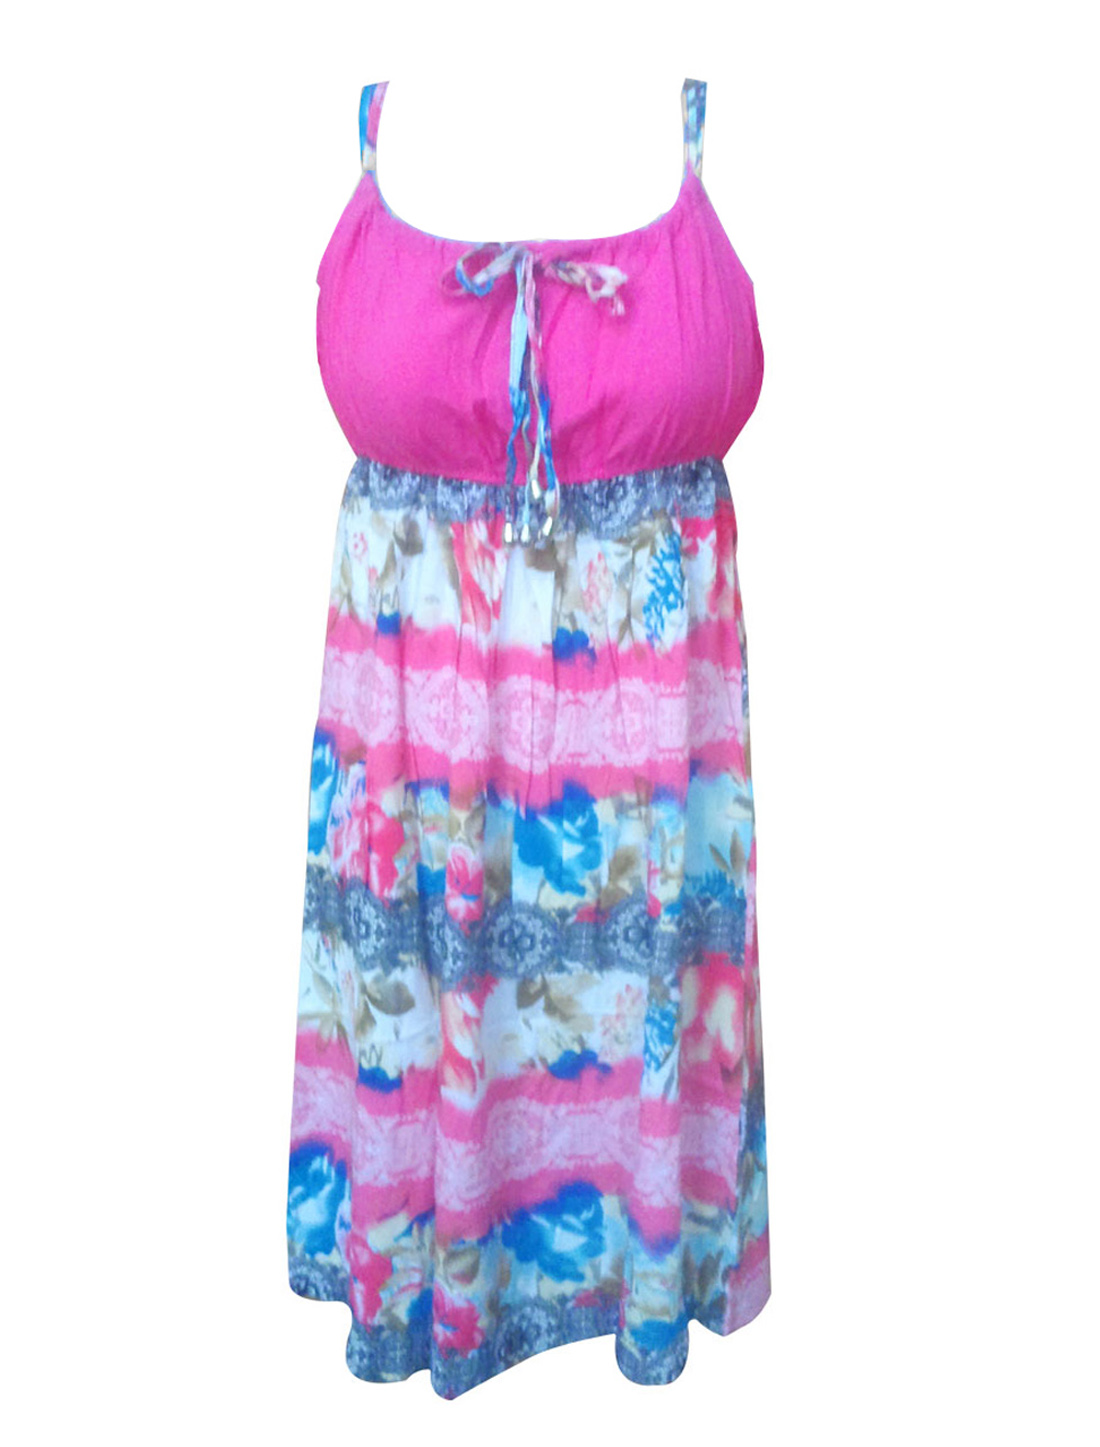 Ladies Colorful Floral Pattern Nightgown Sleep Dress XS